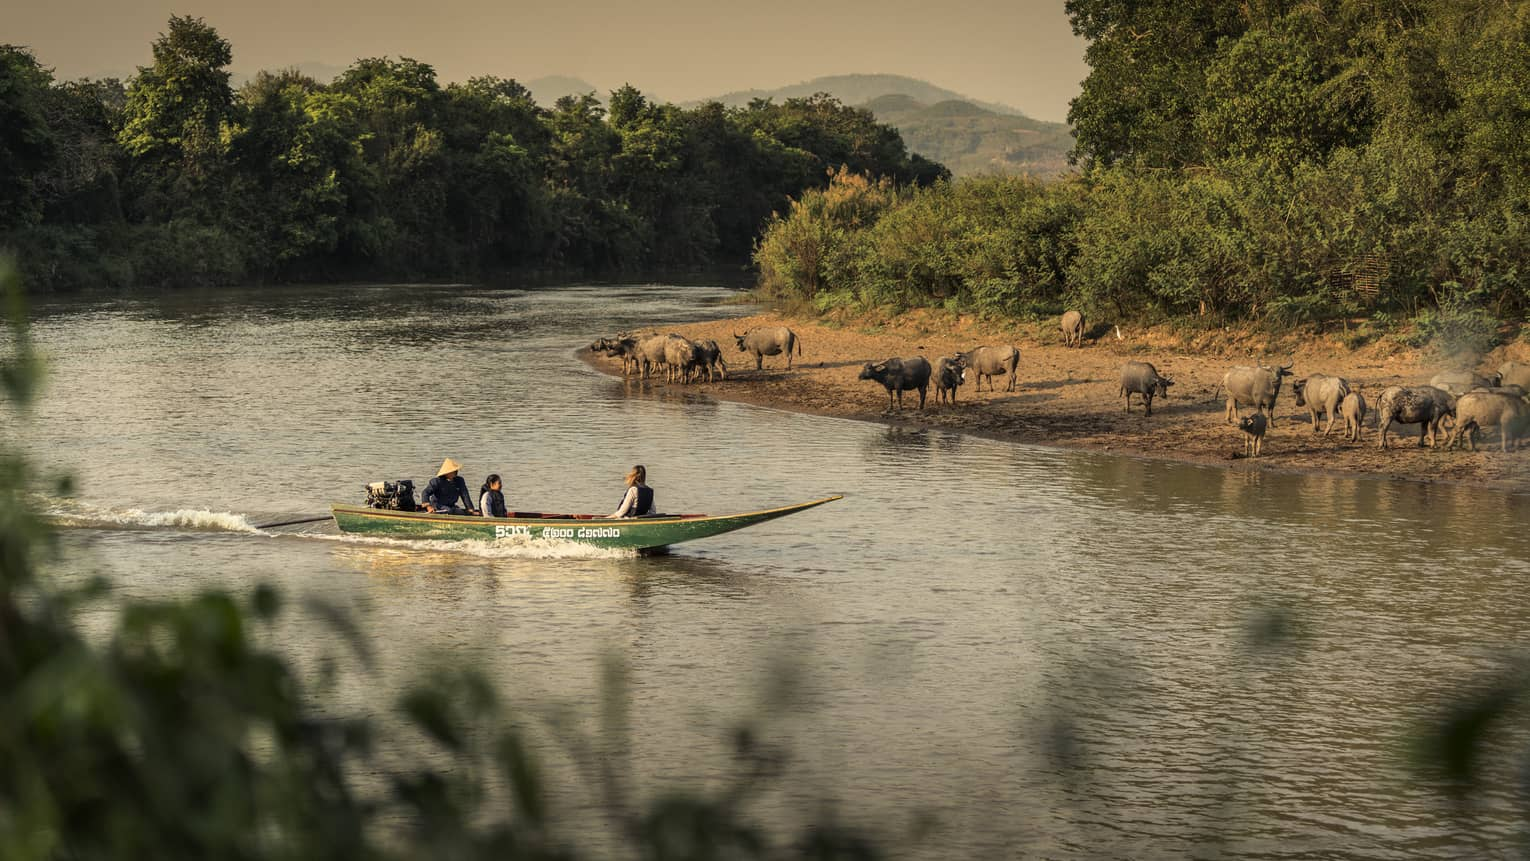 Longtail boat passes animals on the shore of the Ruak river